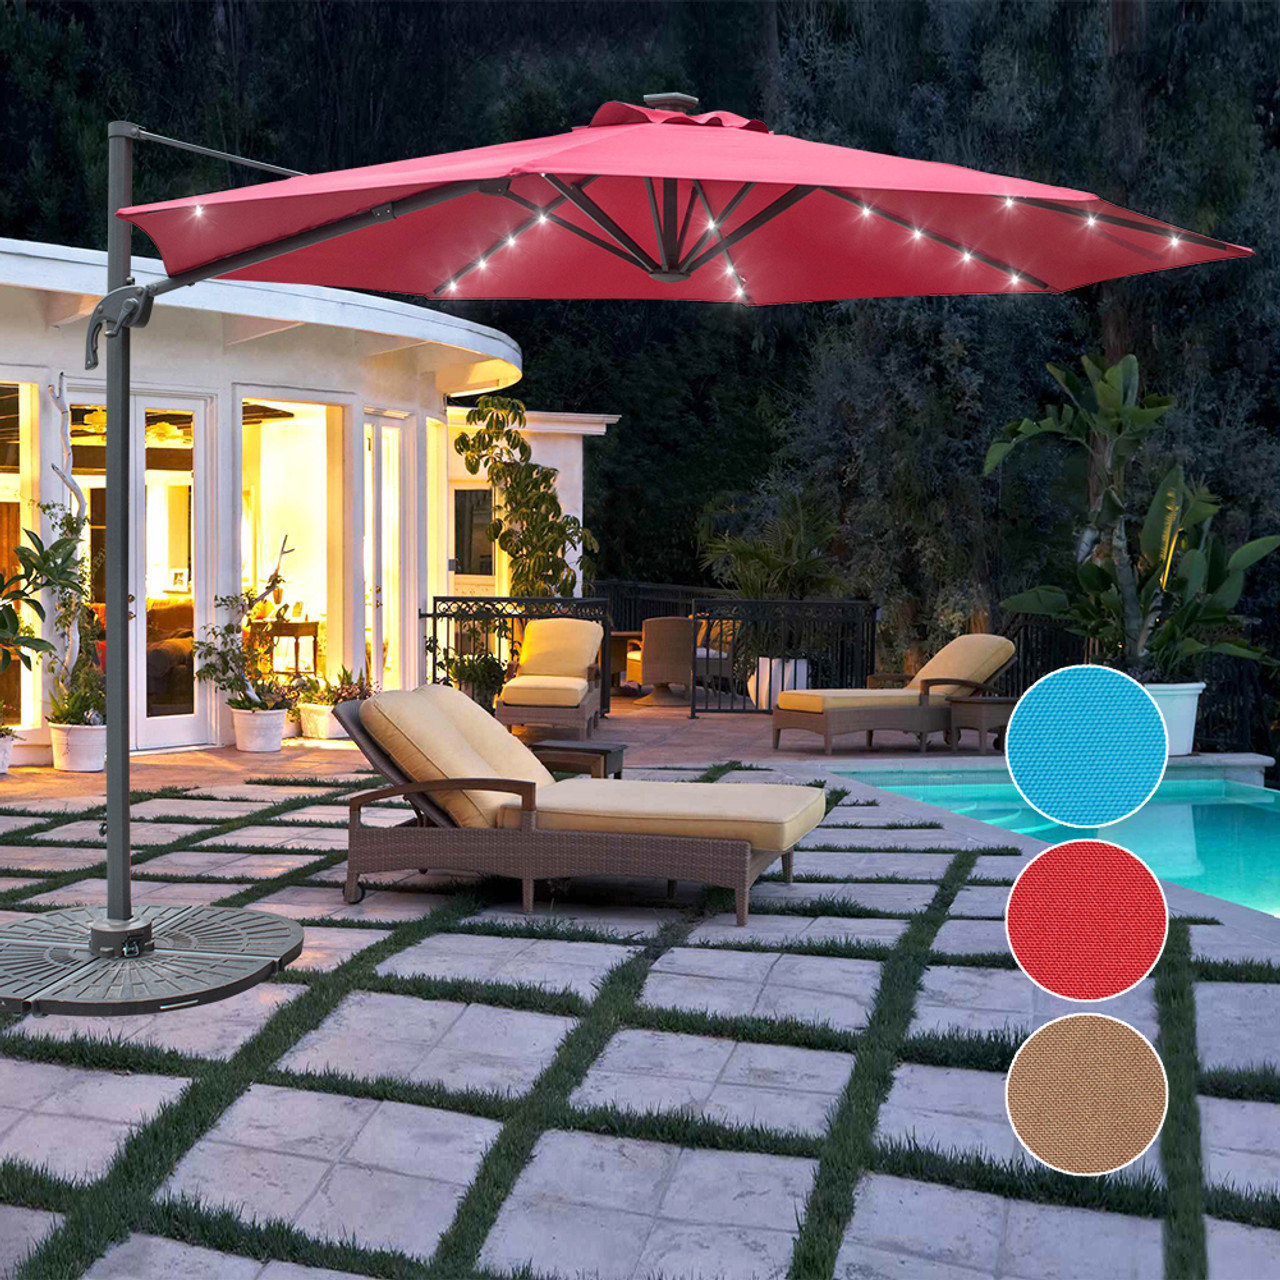 Genial Sundale Outdoor 10FT Solar Powered 28 LED Lighted Umbrella Hanging Roma  Offset Umbrella Outdoor Patio Sun